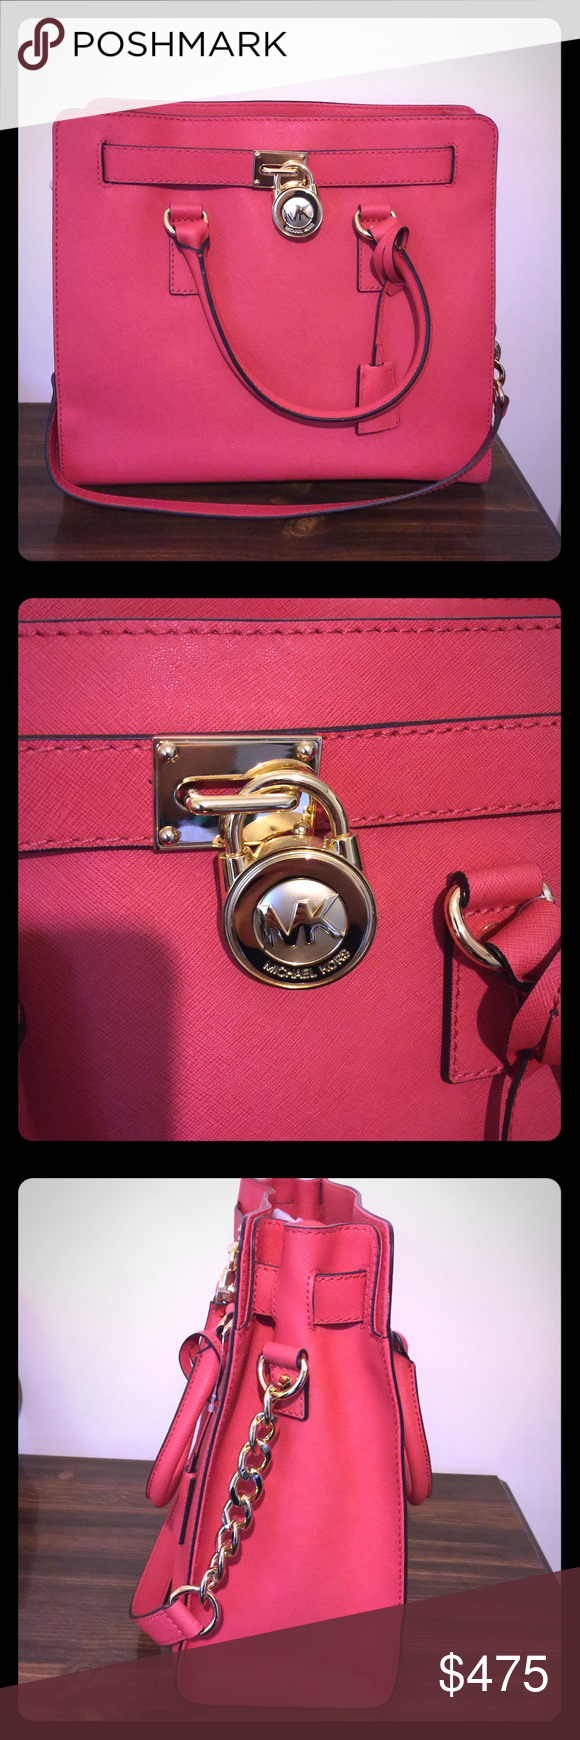 Michael Kors watermelon large Hamilton handbag 👜 Closet clean out, moving soon 💗 NWT Authentic Michael Kors watermelon (coral) Hamilton.  Stunning handbag! My boyfriend bought this for me and I've never used it! Great color for spring and summer 👜💗 MICHAEL Michael Kors Bags Totes